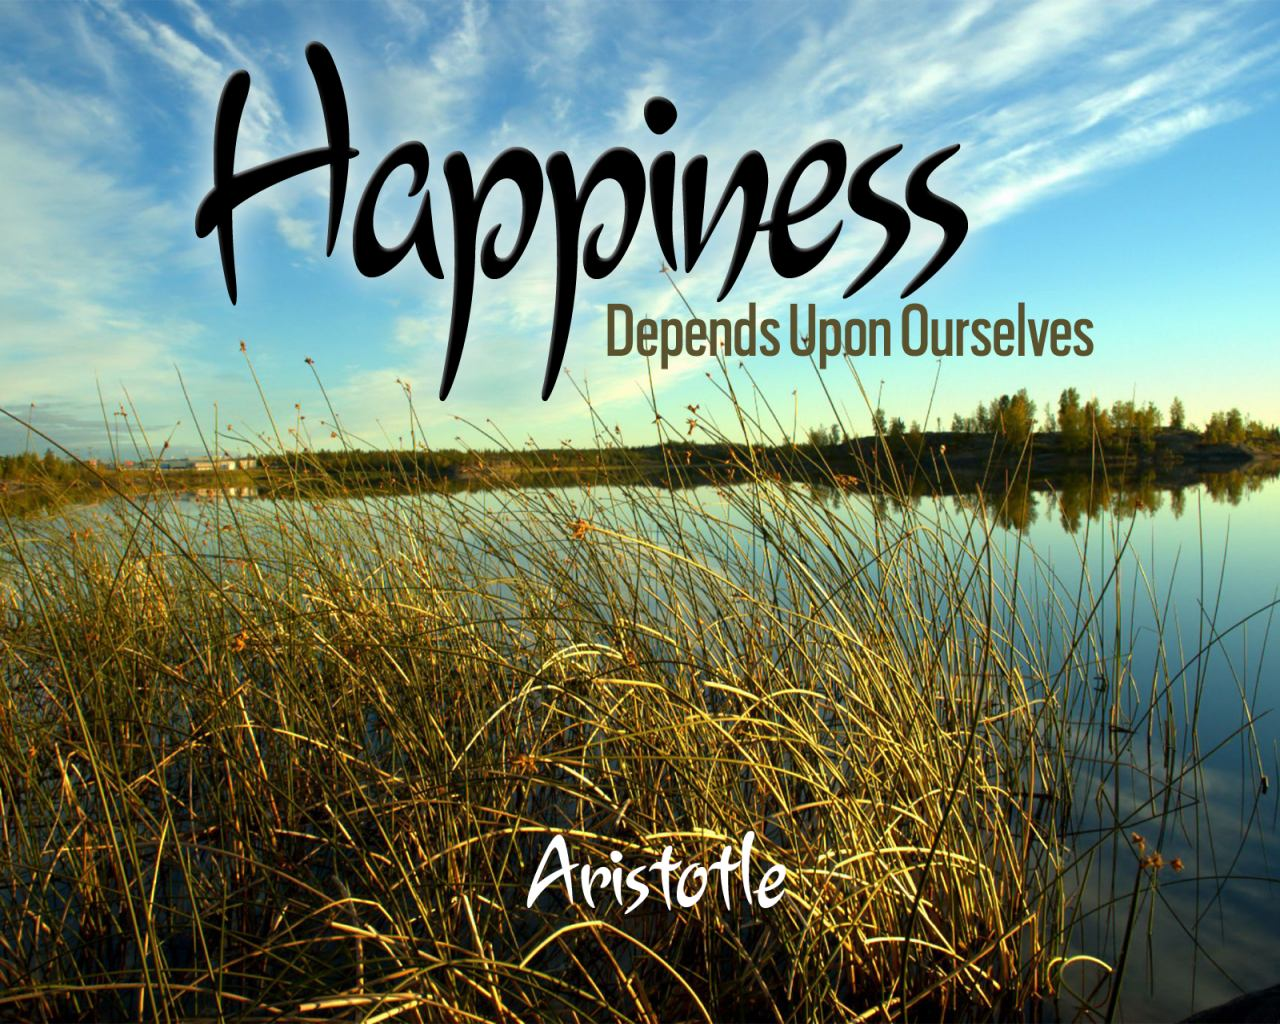 Happiness - Aristotle